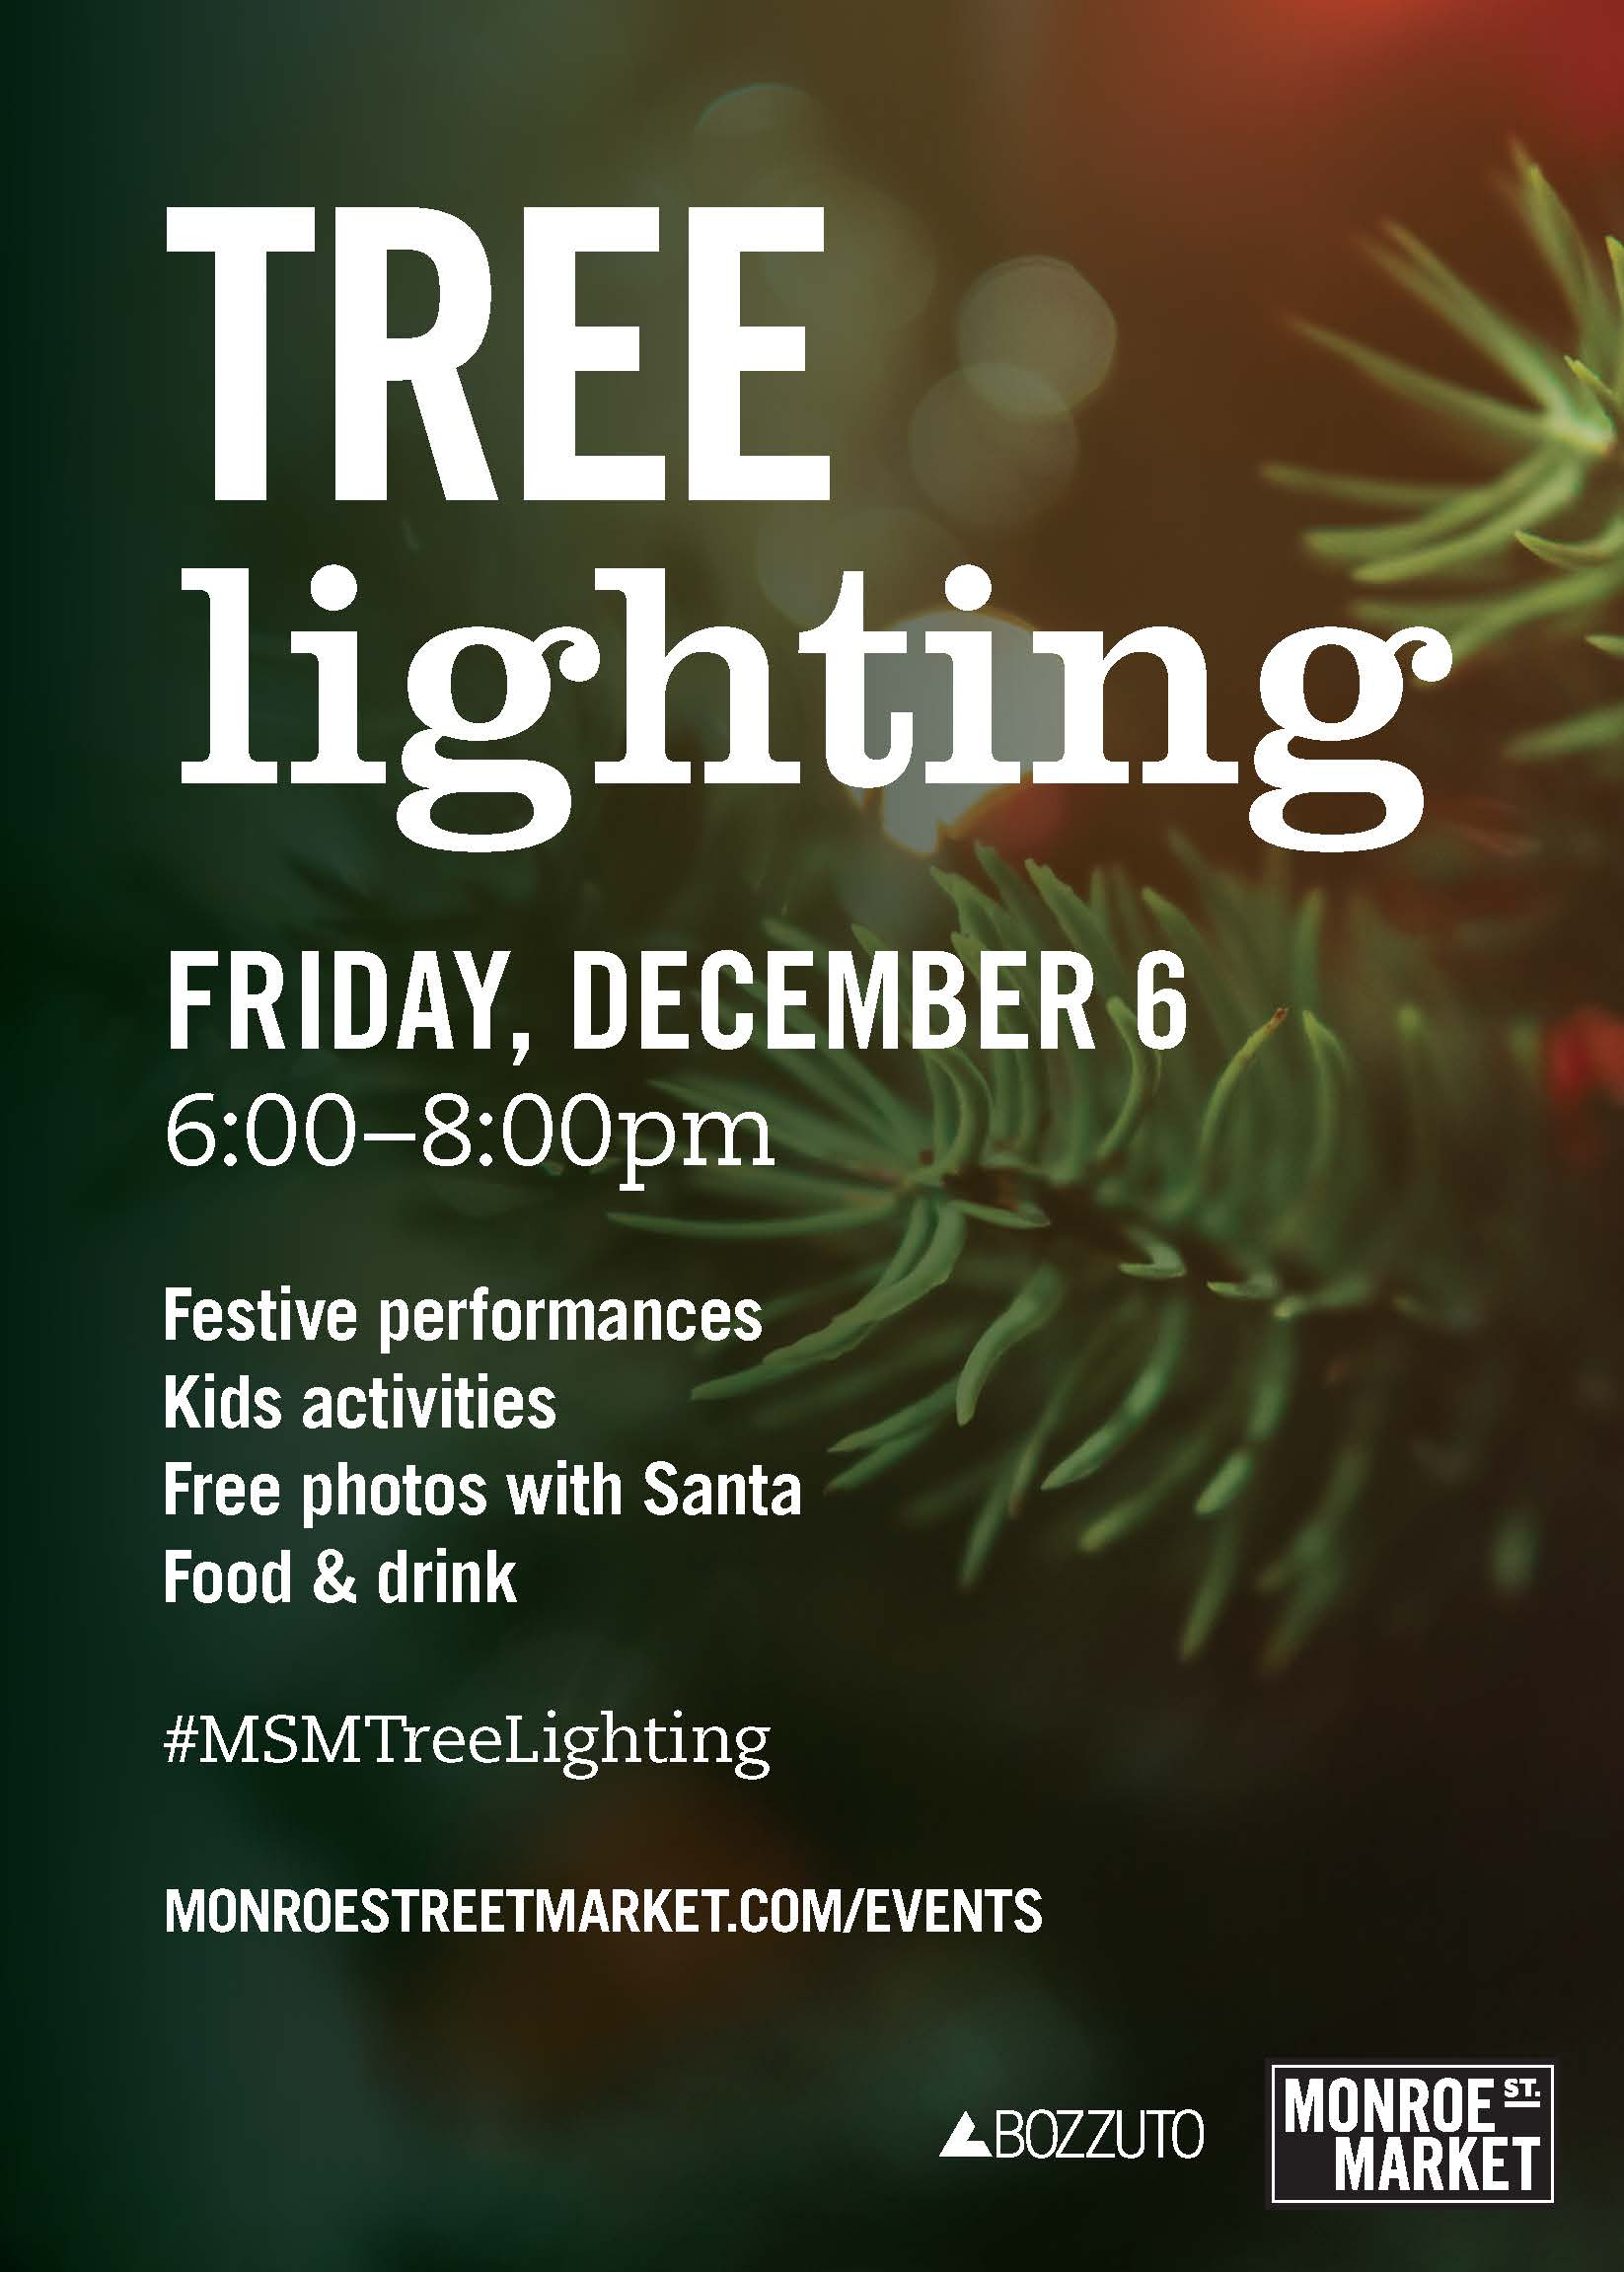 Monroe Street Market Annual Tree Lighting Event